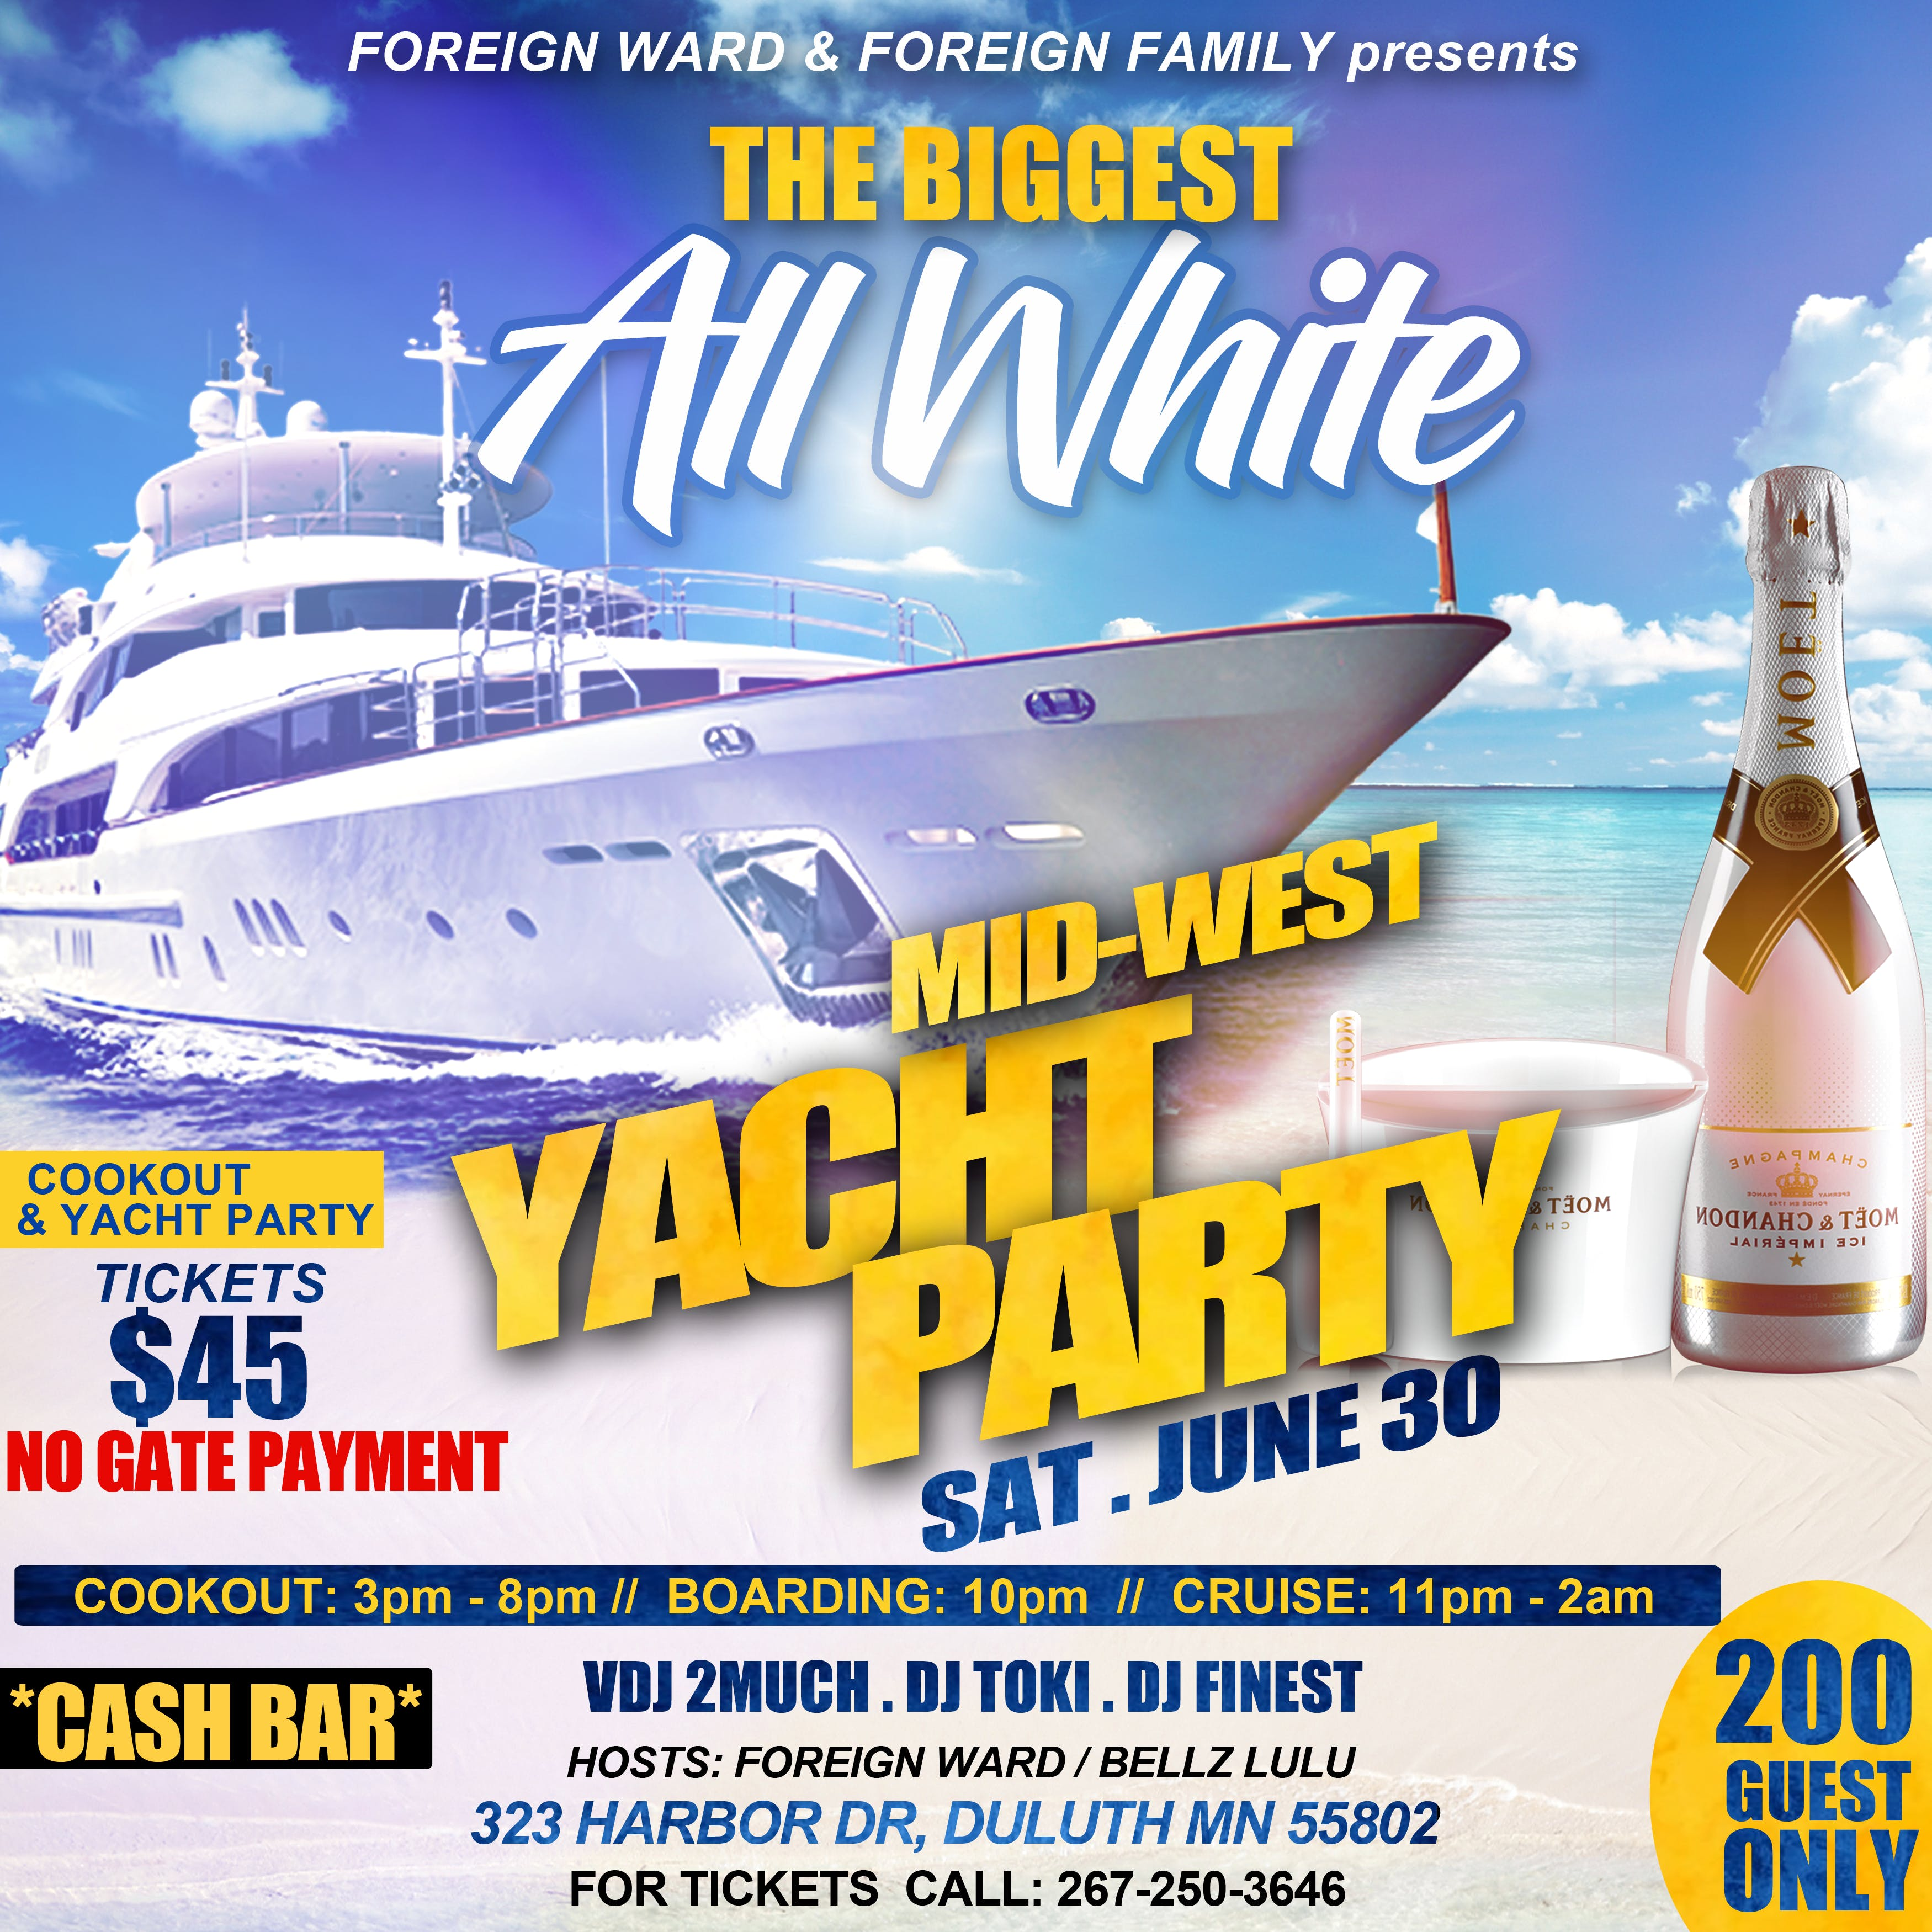 V I P 2) Midwest ALL WHITE Yacht party at VISTA FLEET, Duluth